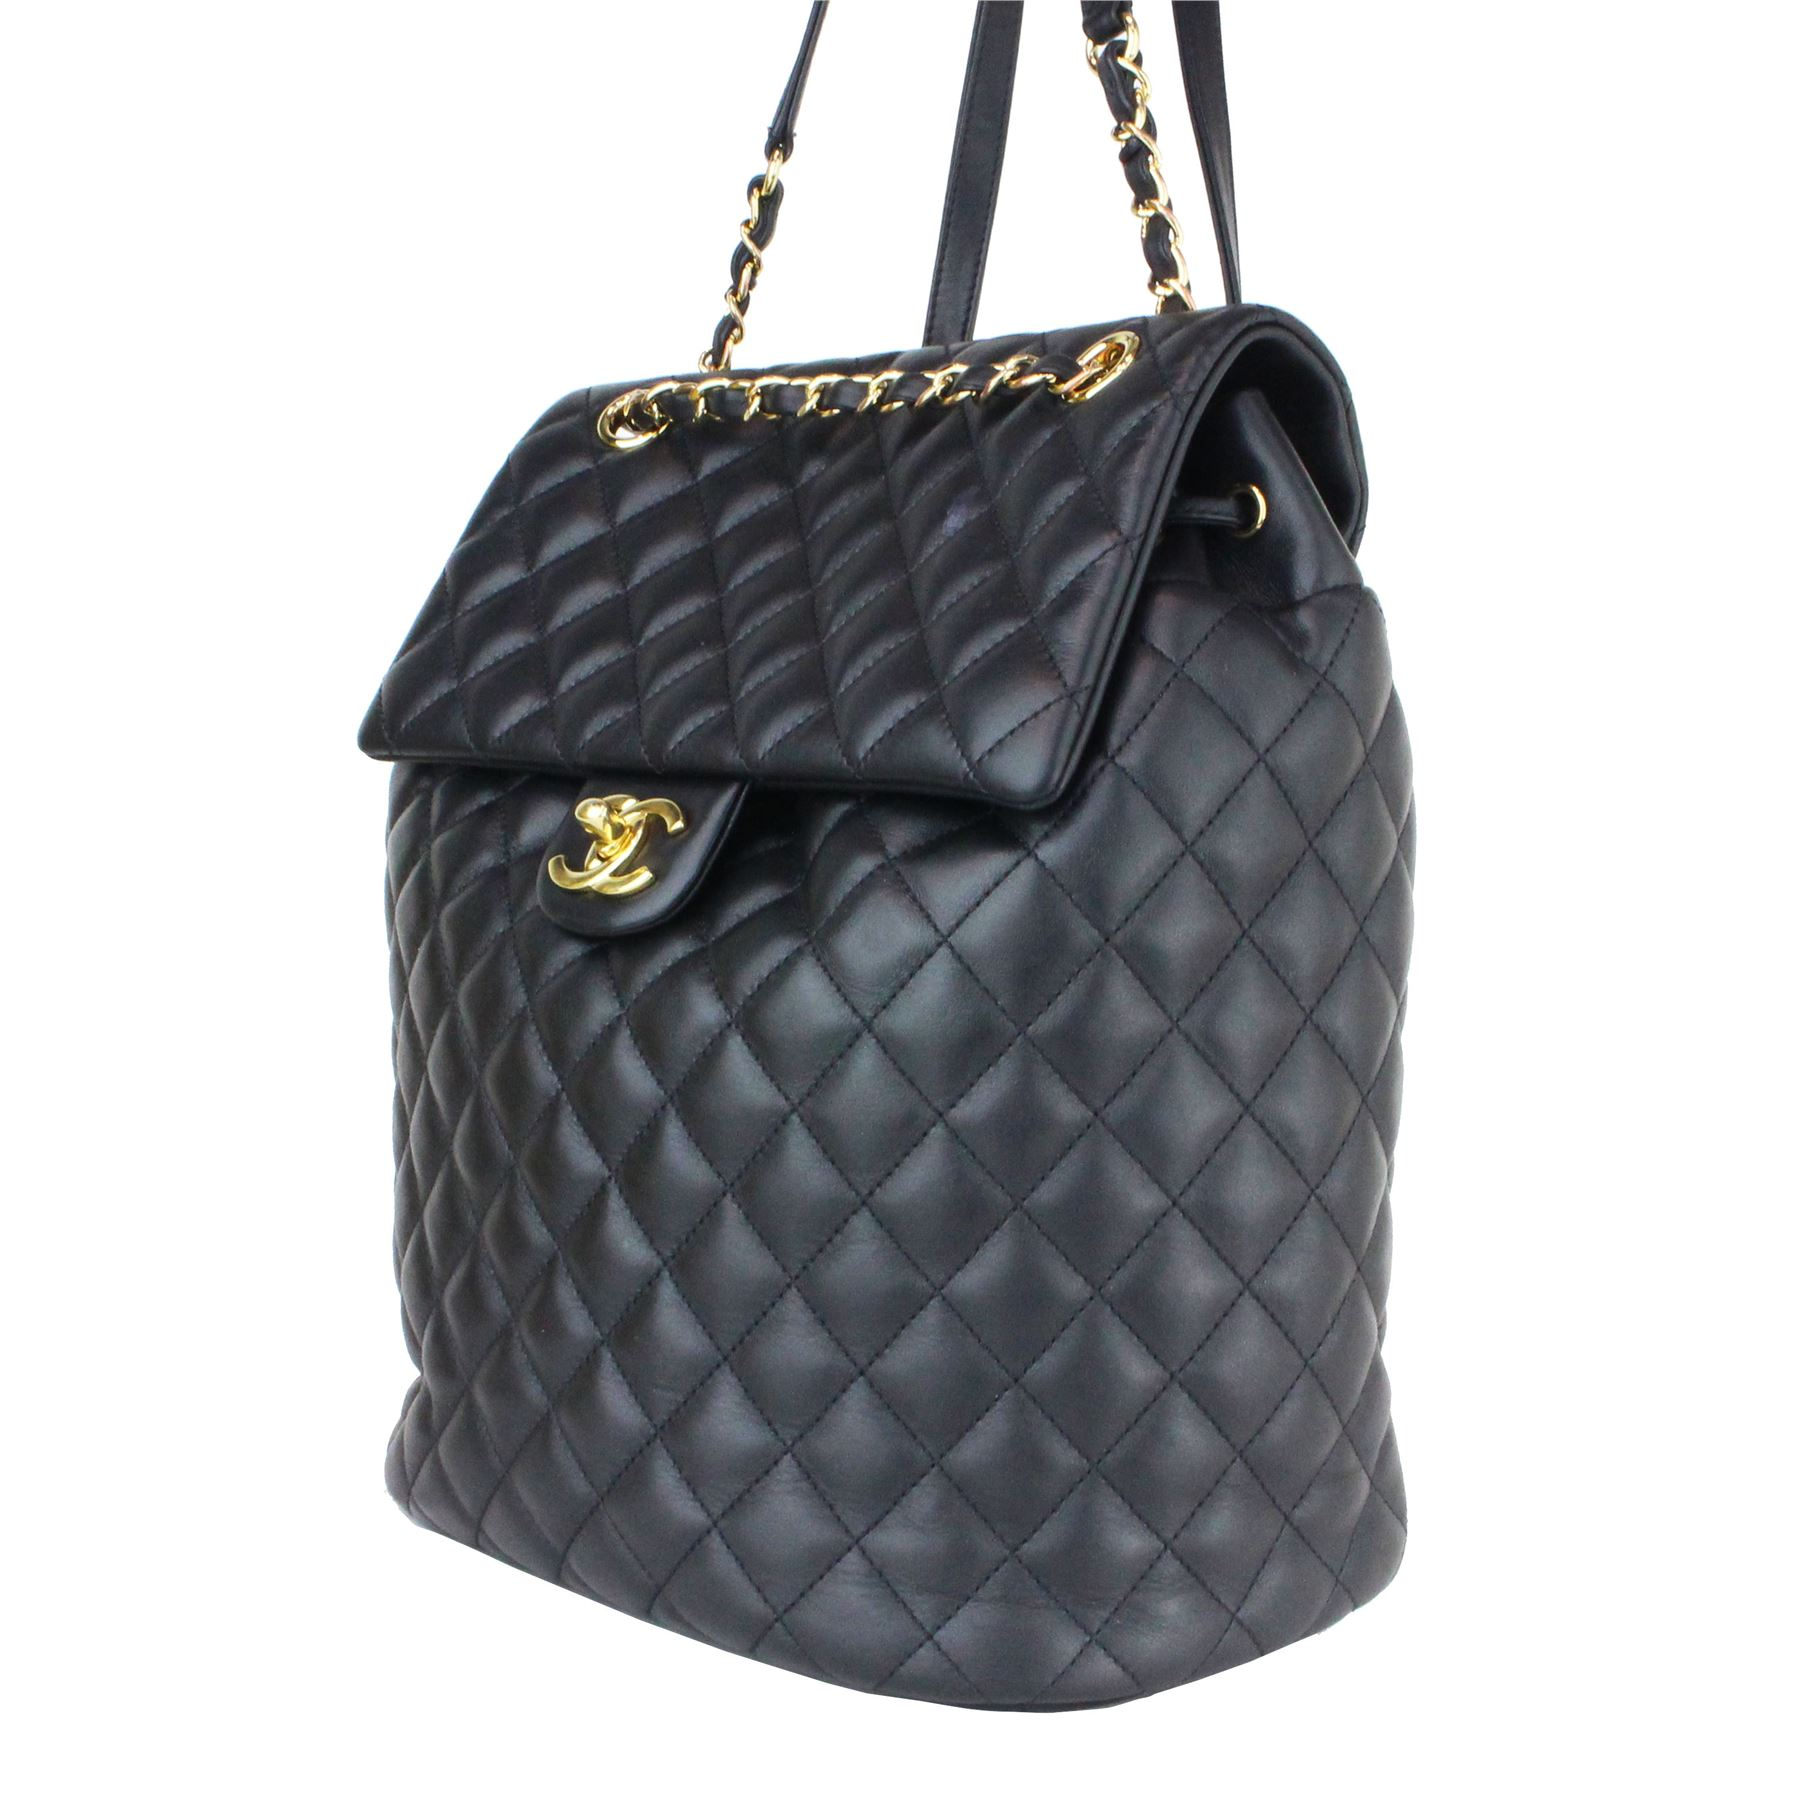 fdcac4f91a56 Image 1 : CHANEL BACKPACK URBAN SPIRIT BLACK LAMBSKIN LEATHER BACKPACK ...